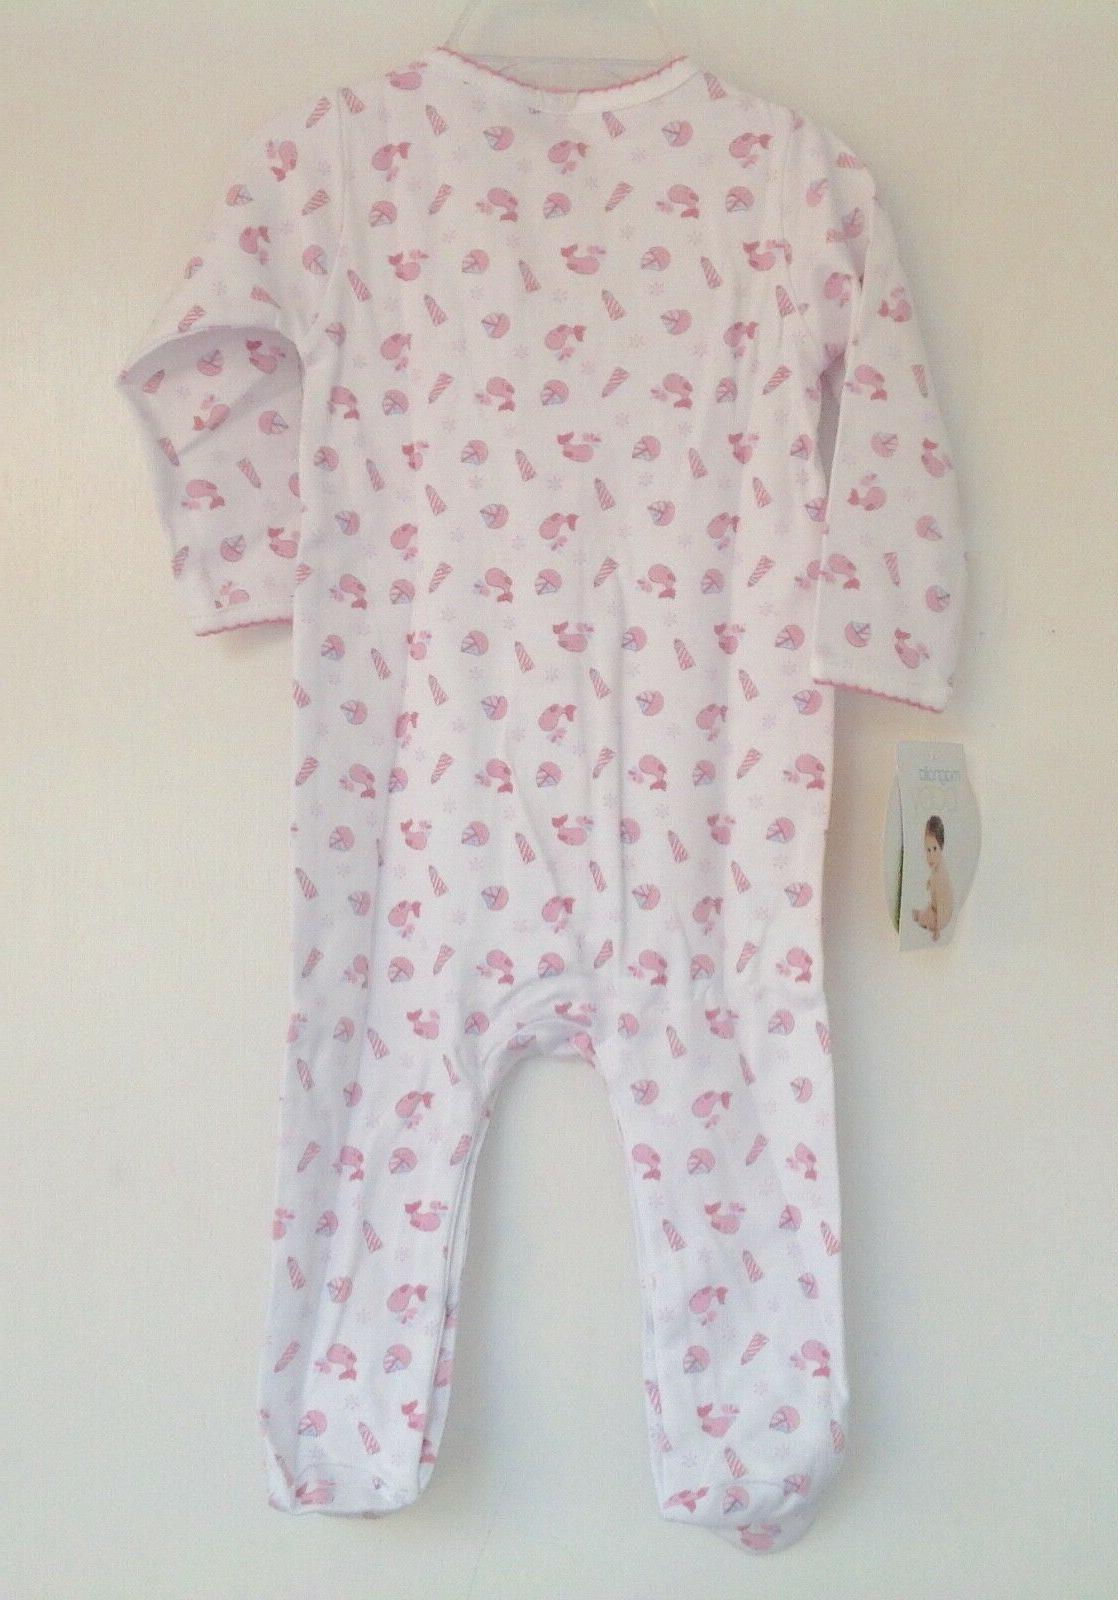 Magnolia Baby 9 Piece Footie 'Out at NEW